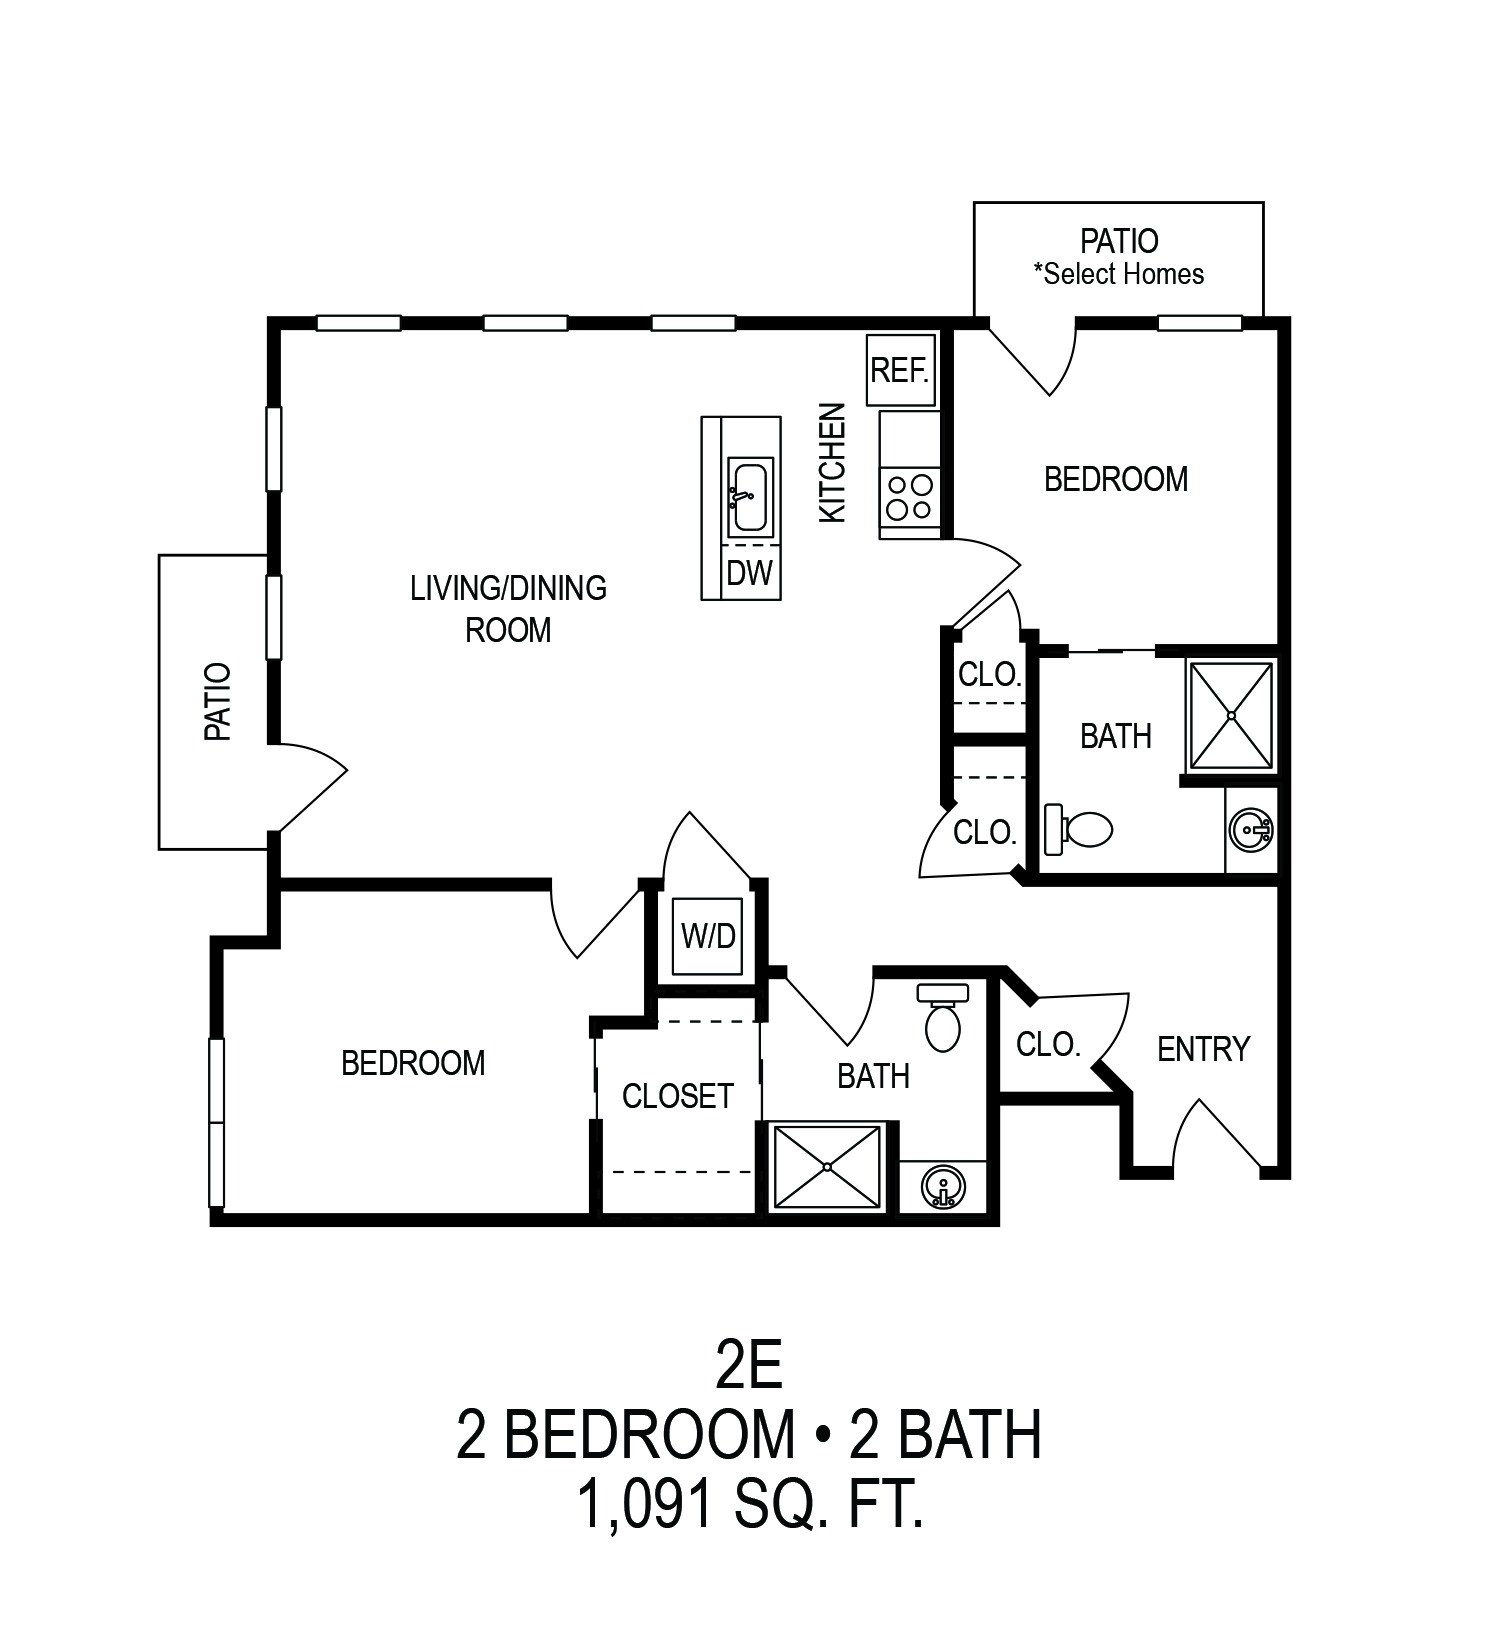 625 S. Goodman Apartments - Floorplan - Two Bedroom with Balcony (E)